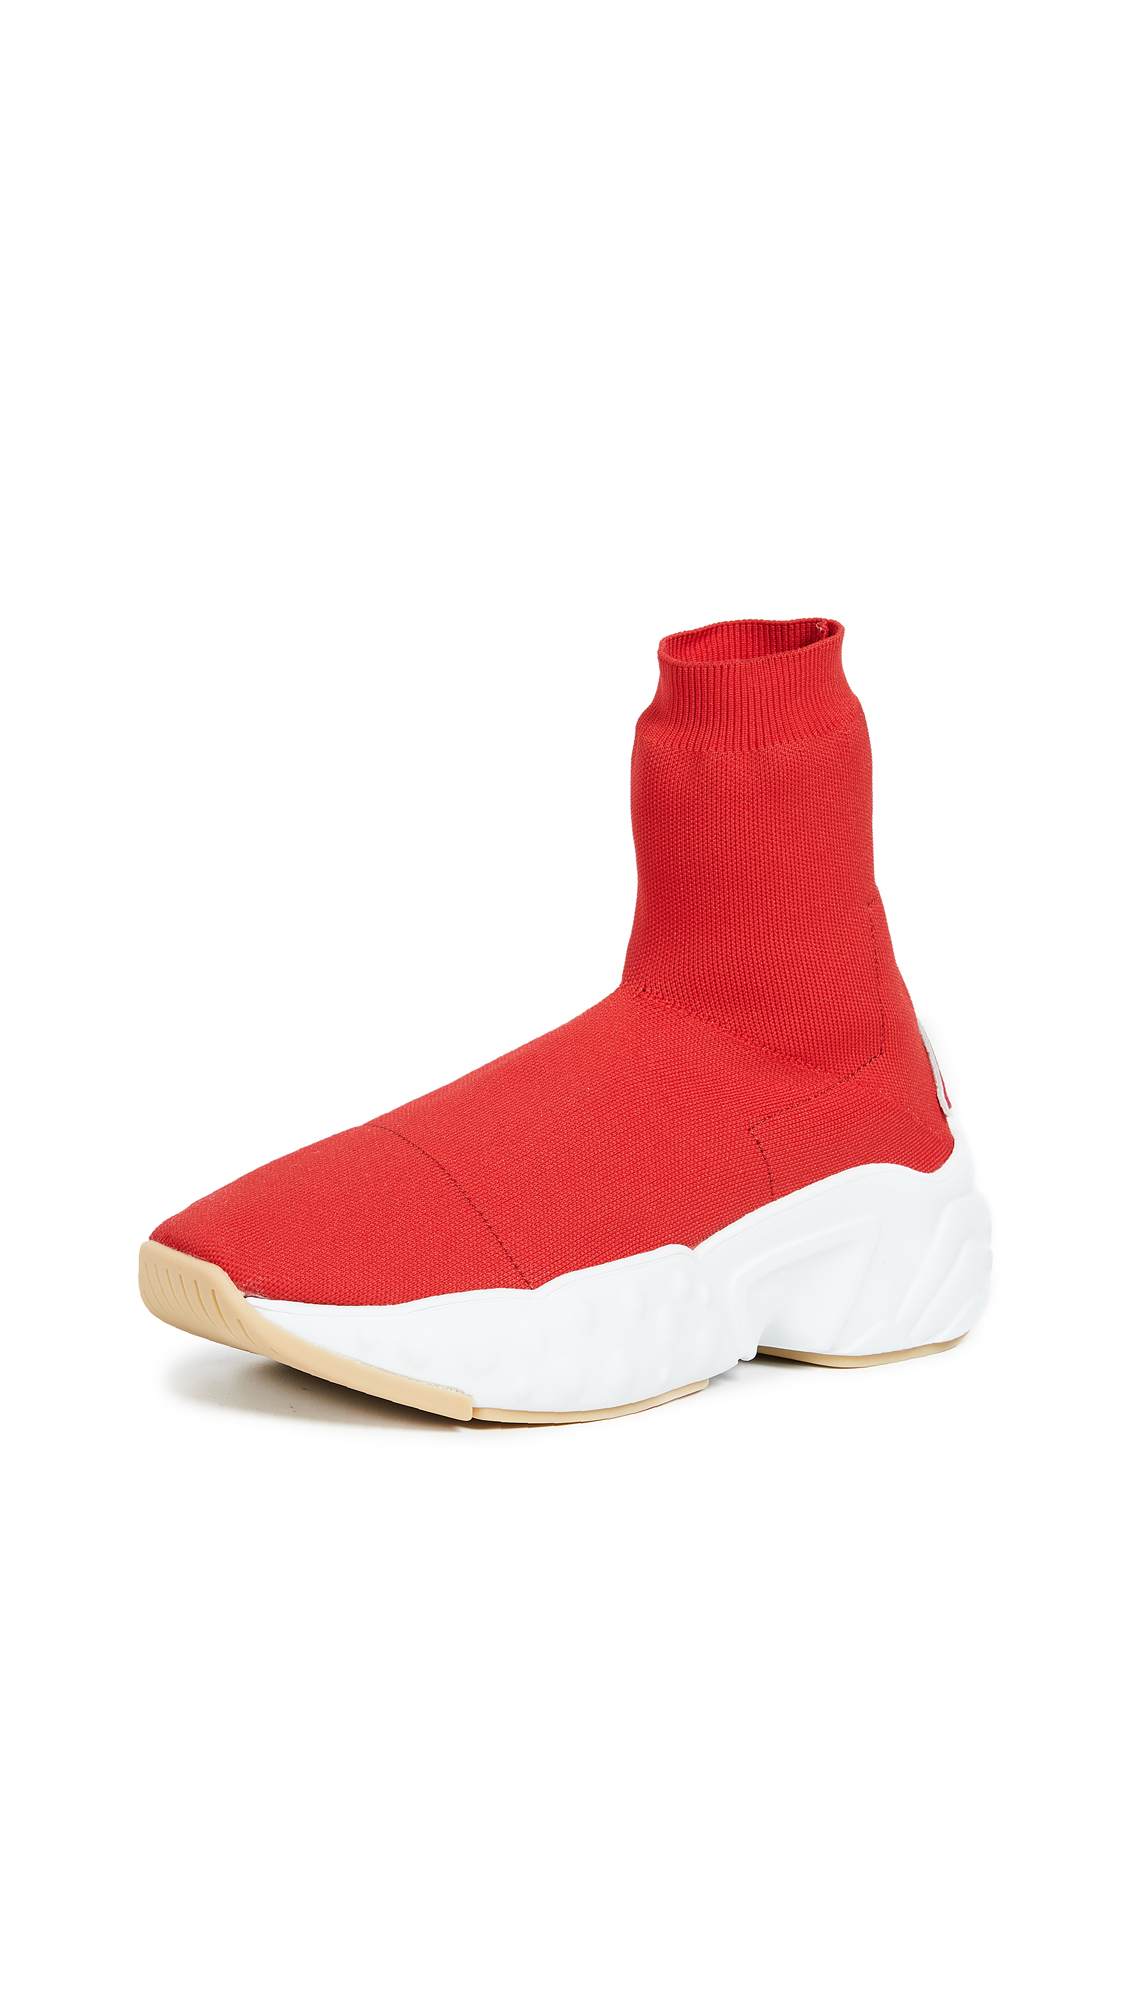 Acne Studios Tall Sock Sneakers In Red/Red